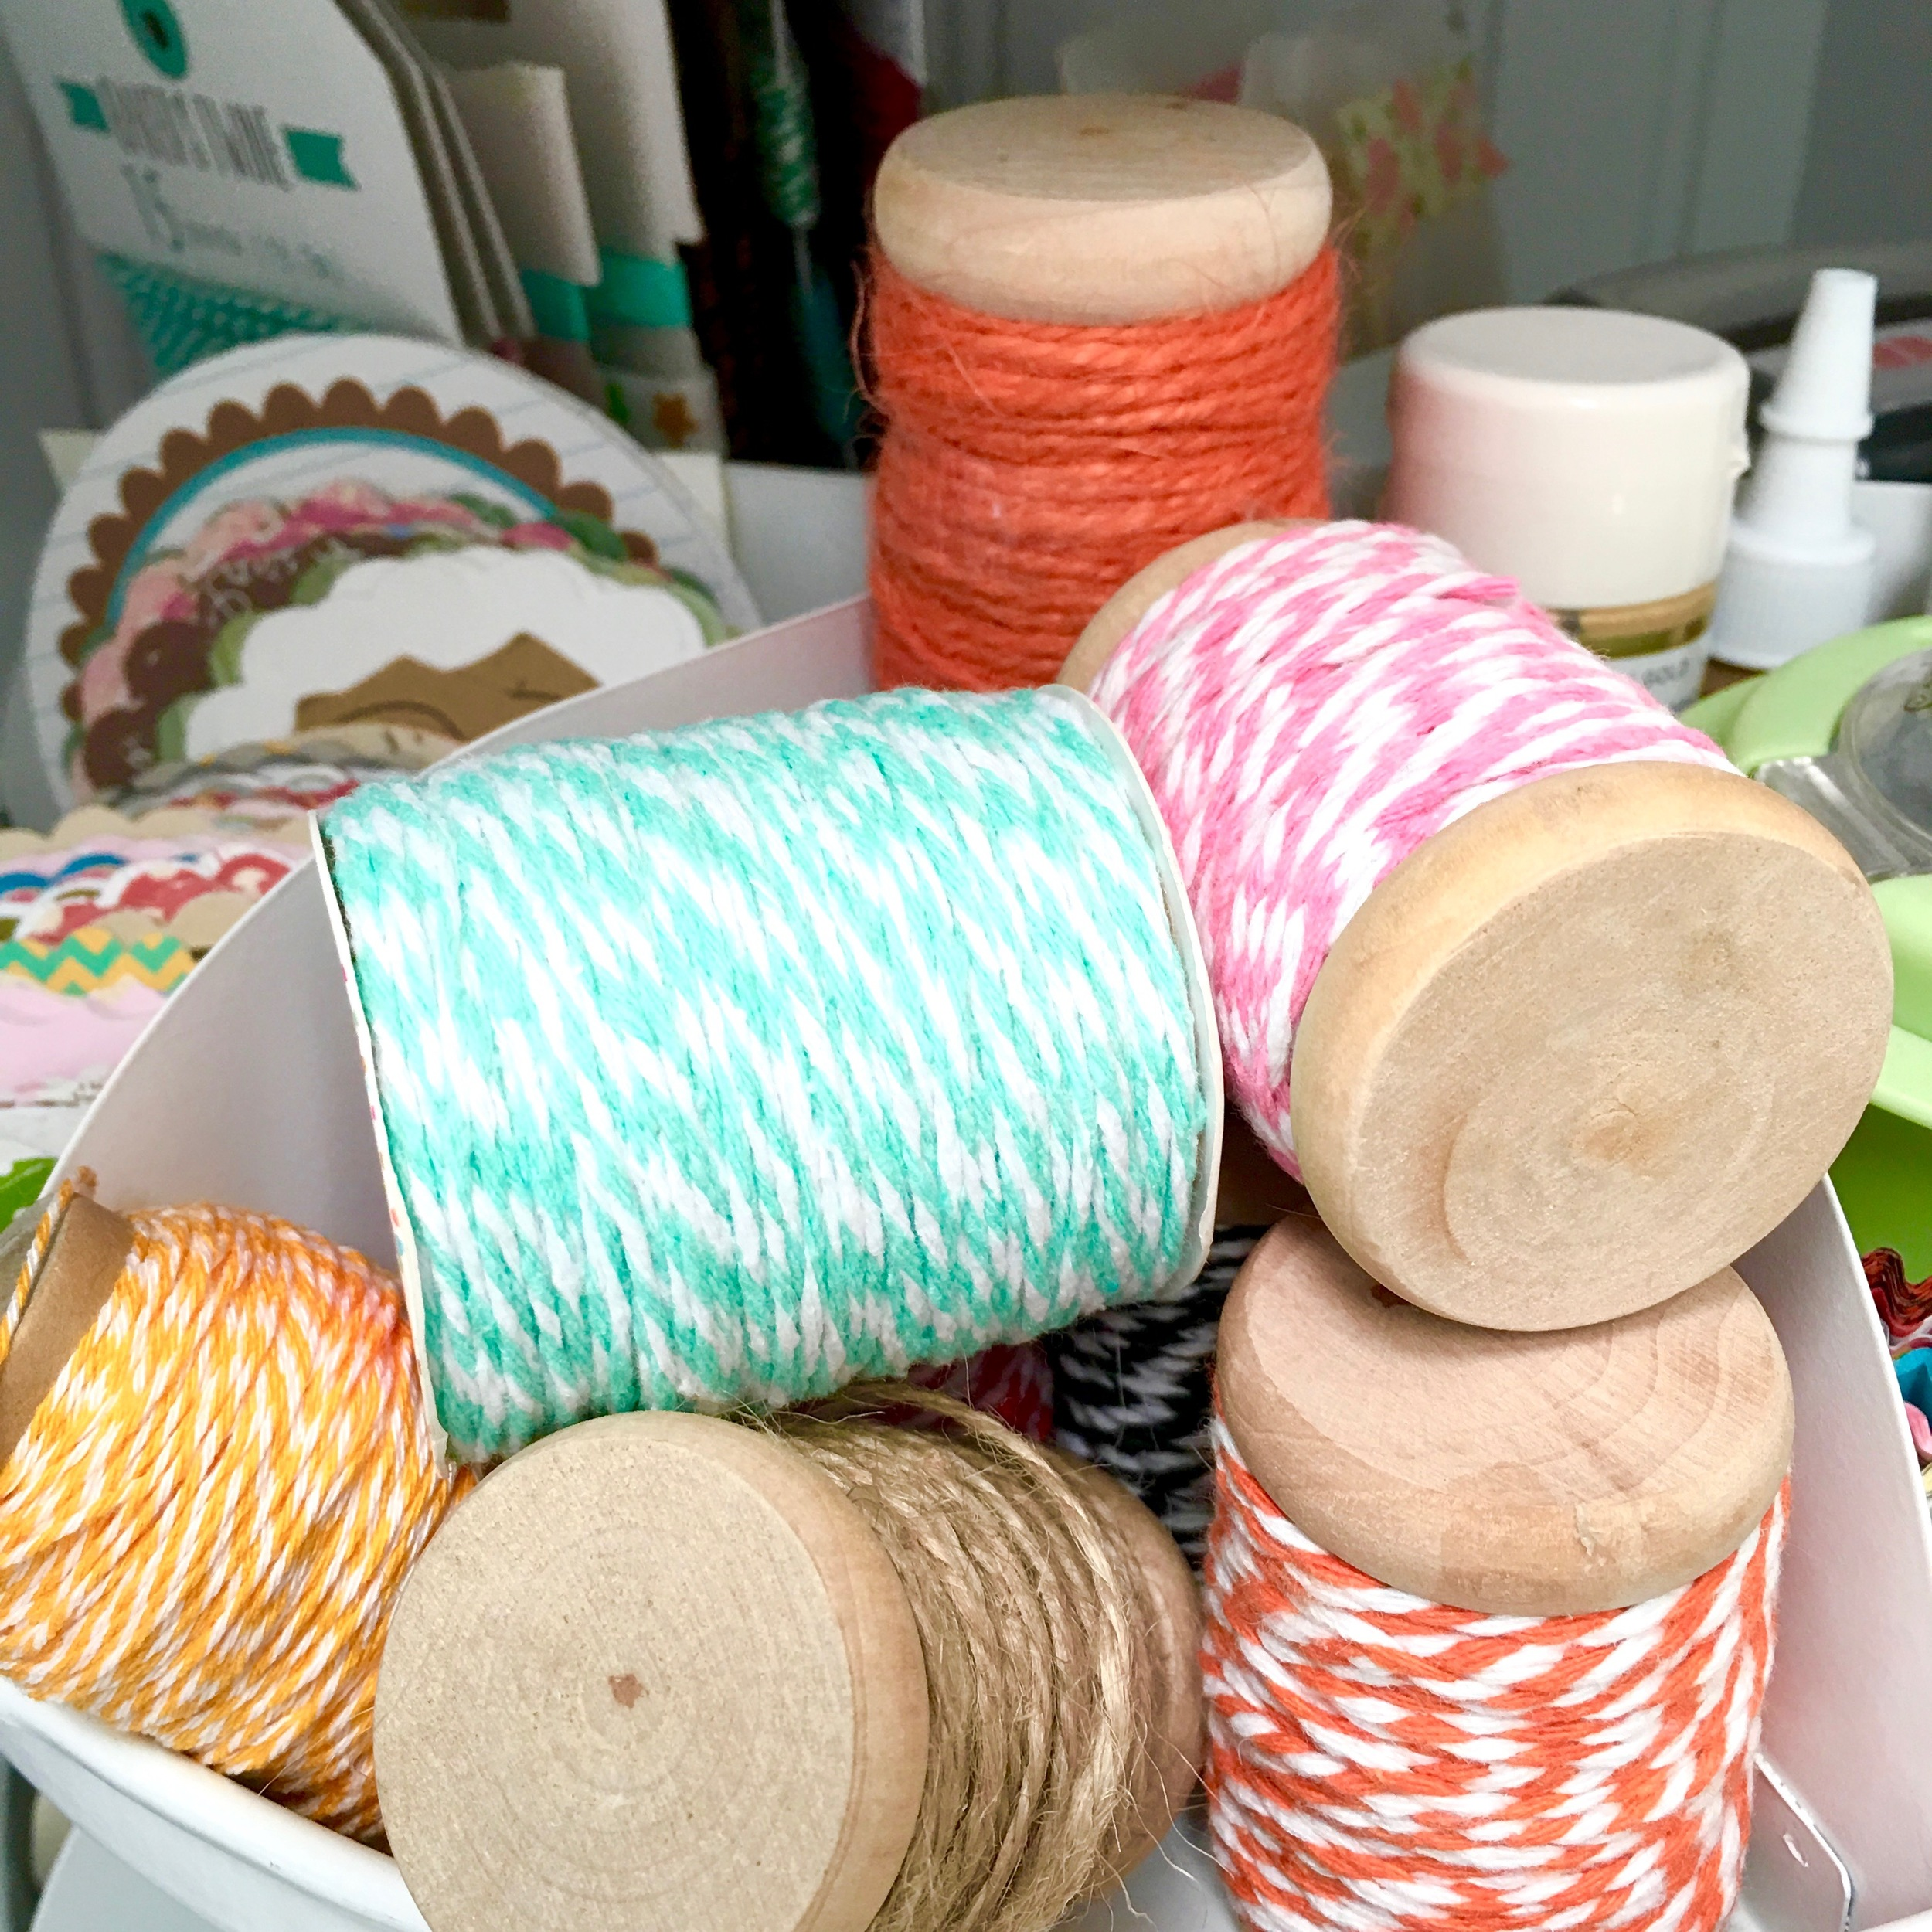 twine-craft-room-organization-scrapbooking-supplies-a-peach-life